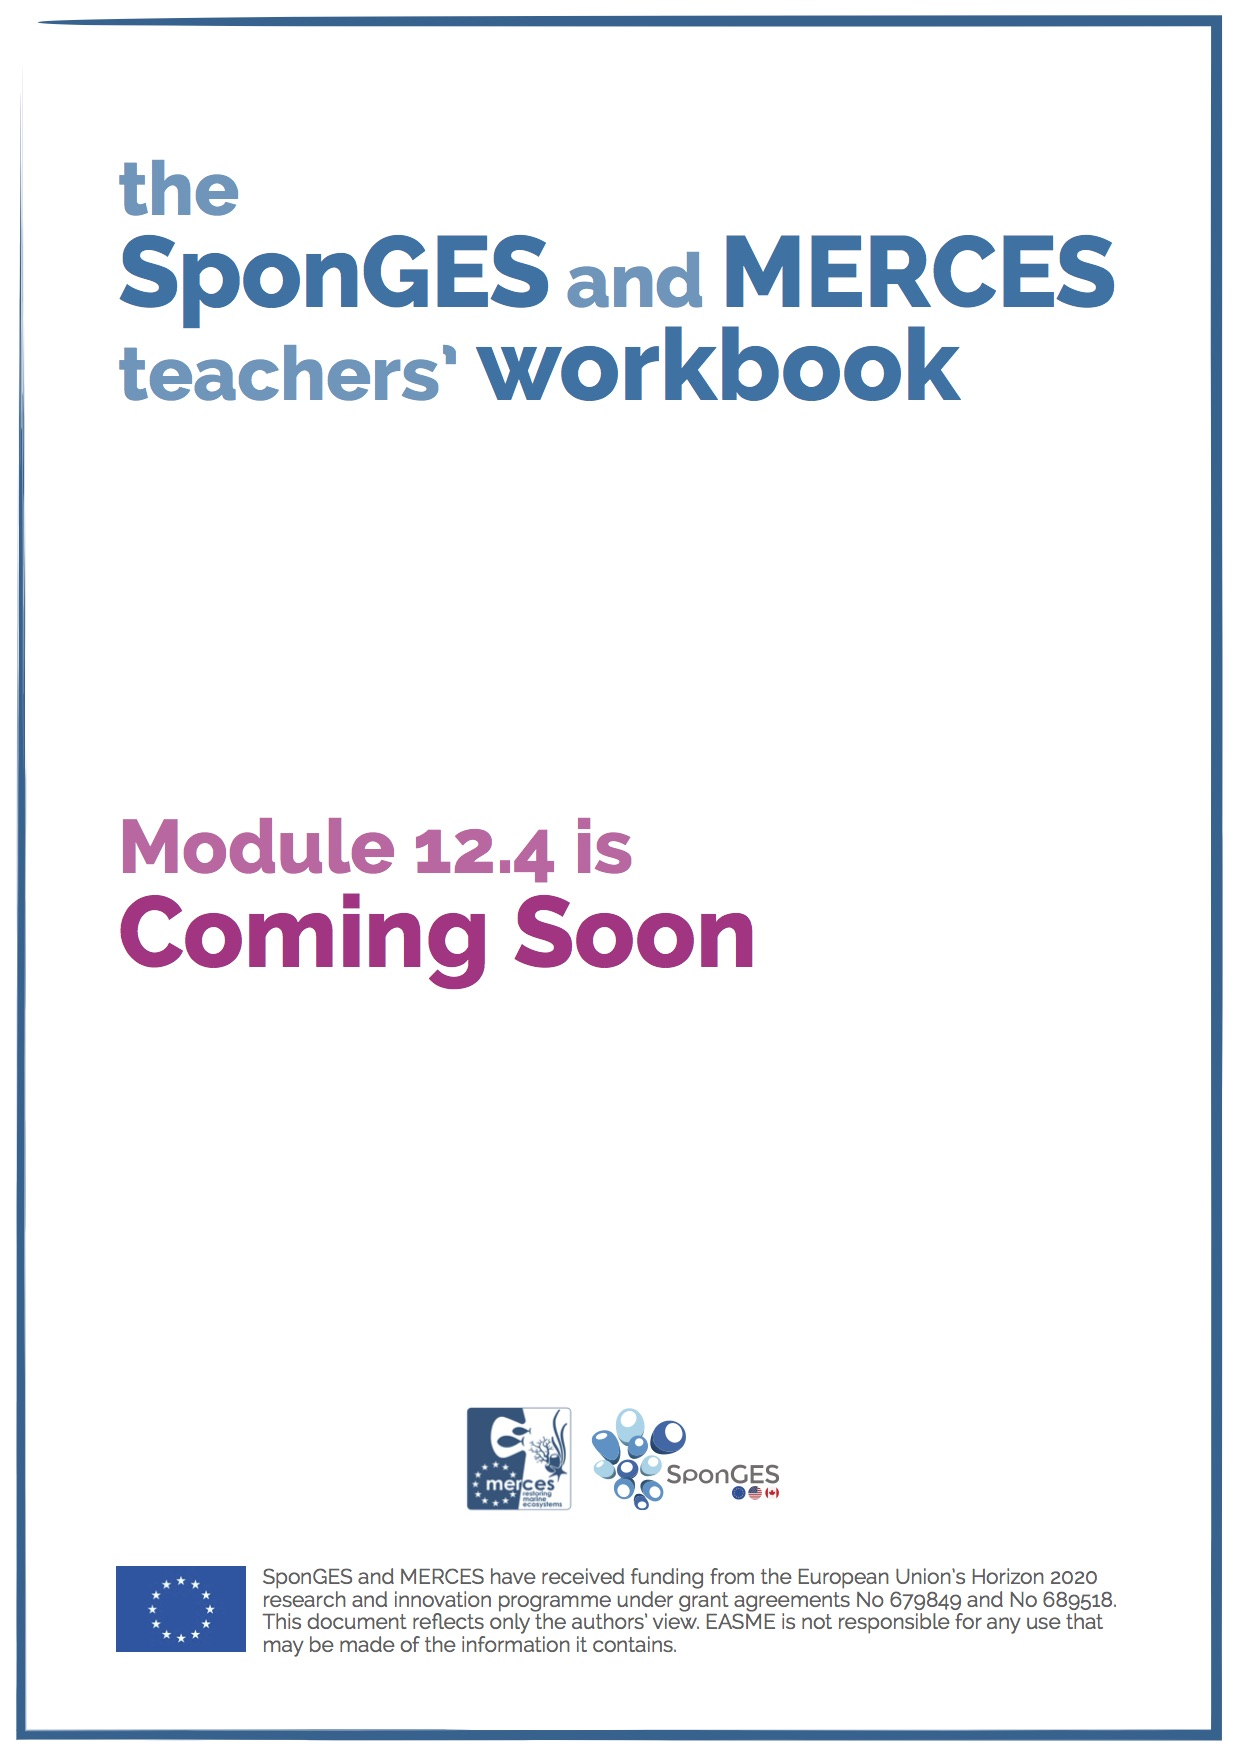 Module 12.4 of the SponGES and MERCES teachers' workbook